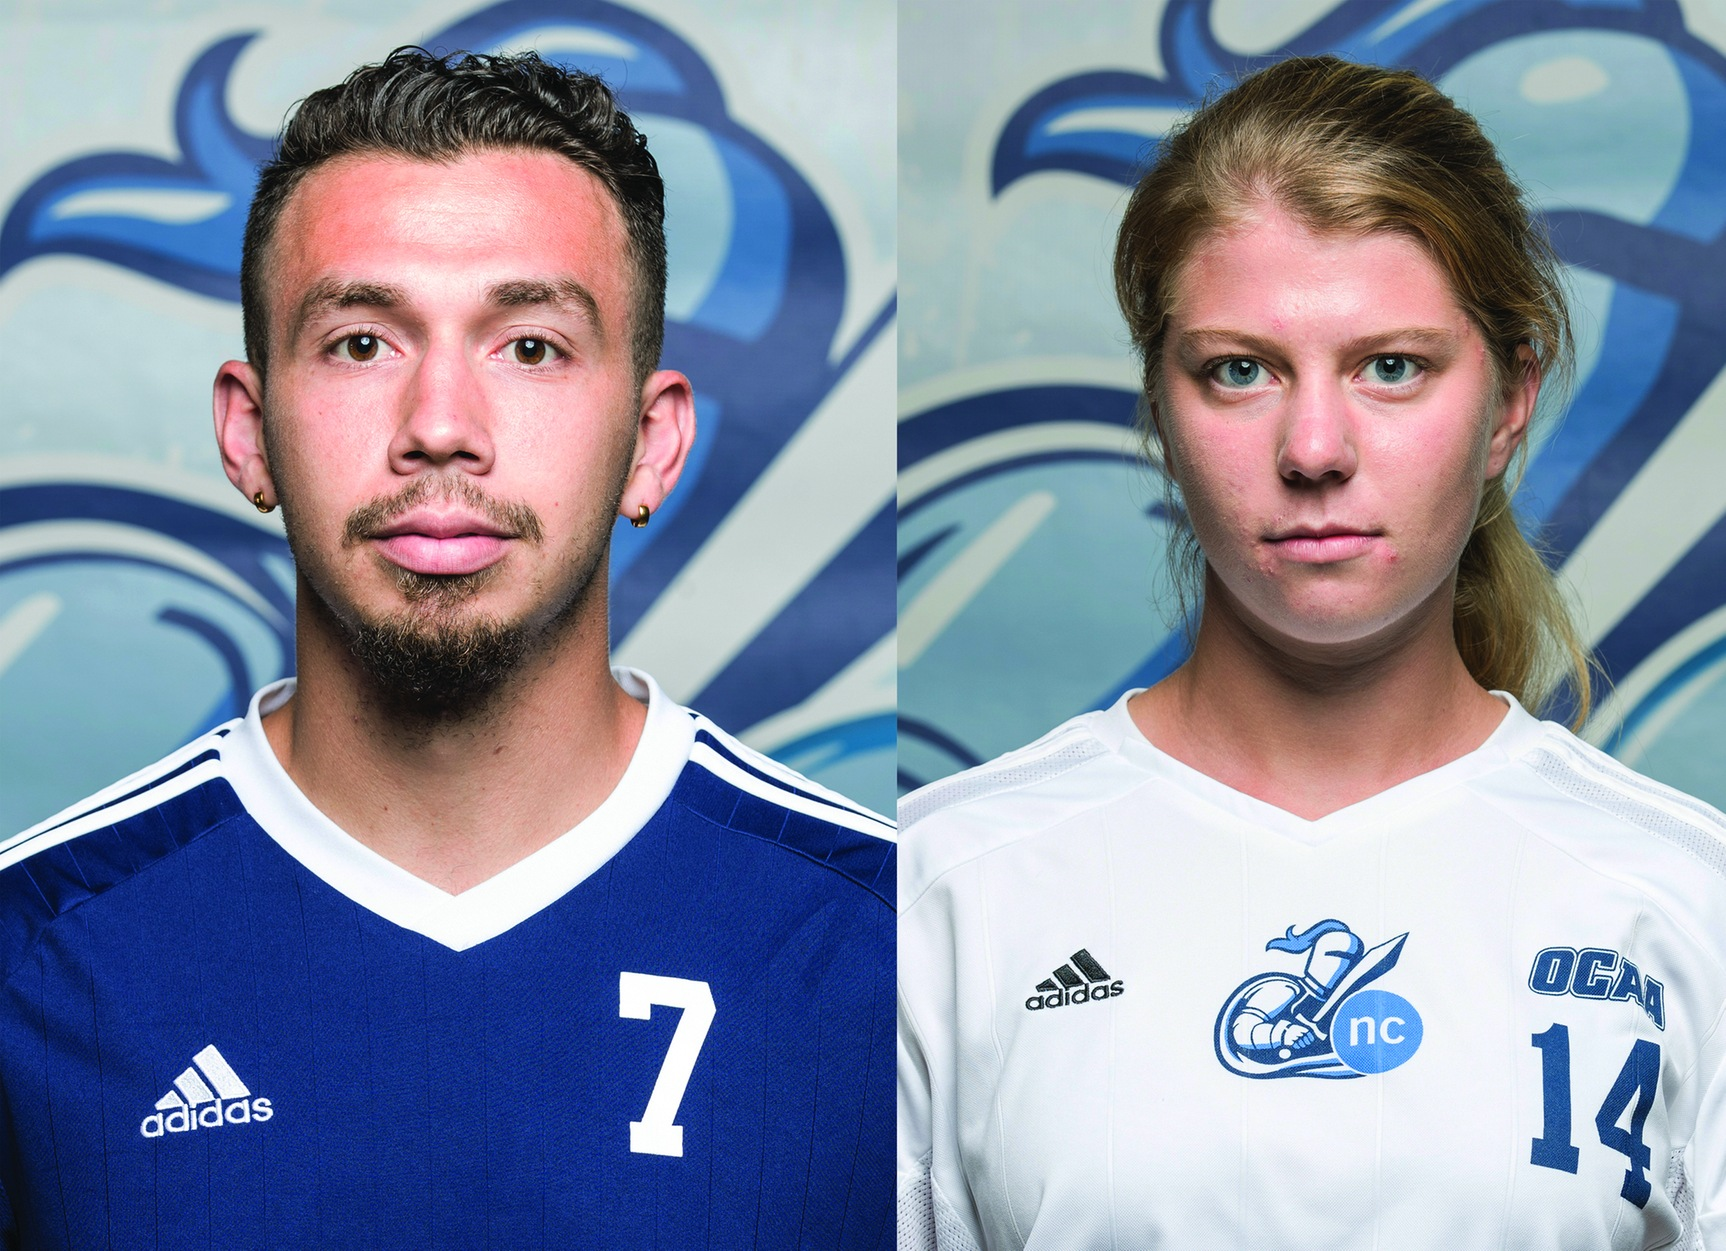 NEWS: Amores and Langendoen named Athletes of the Week